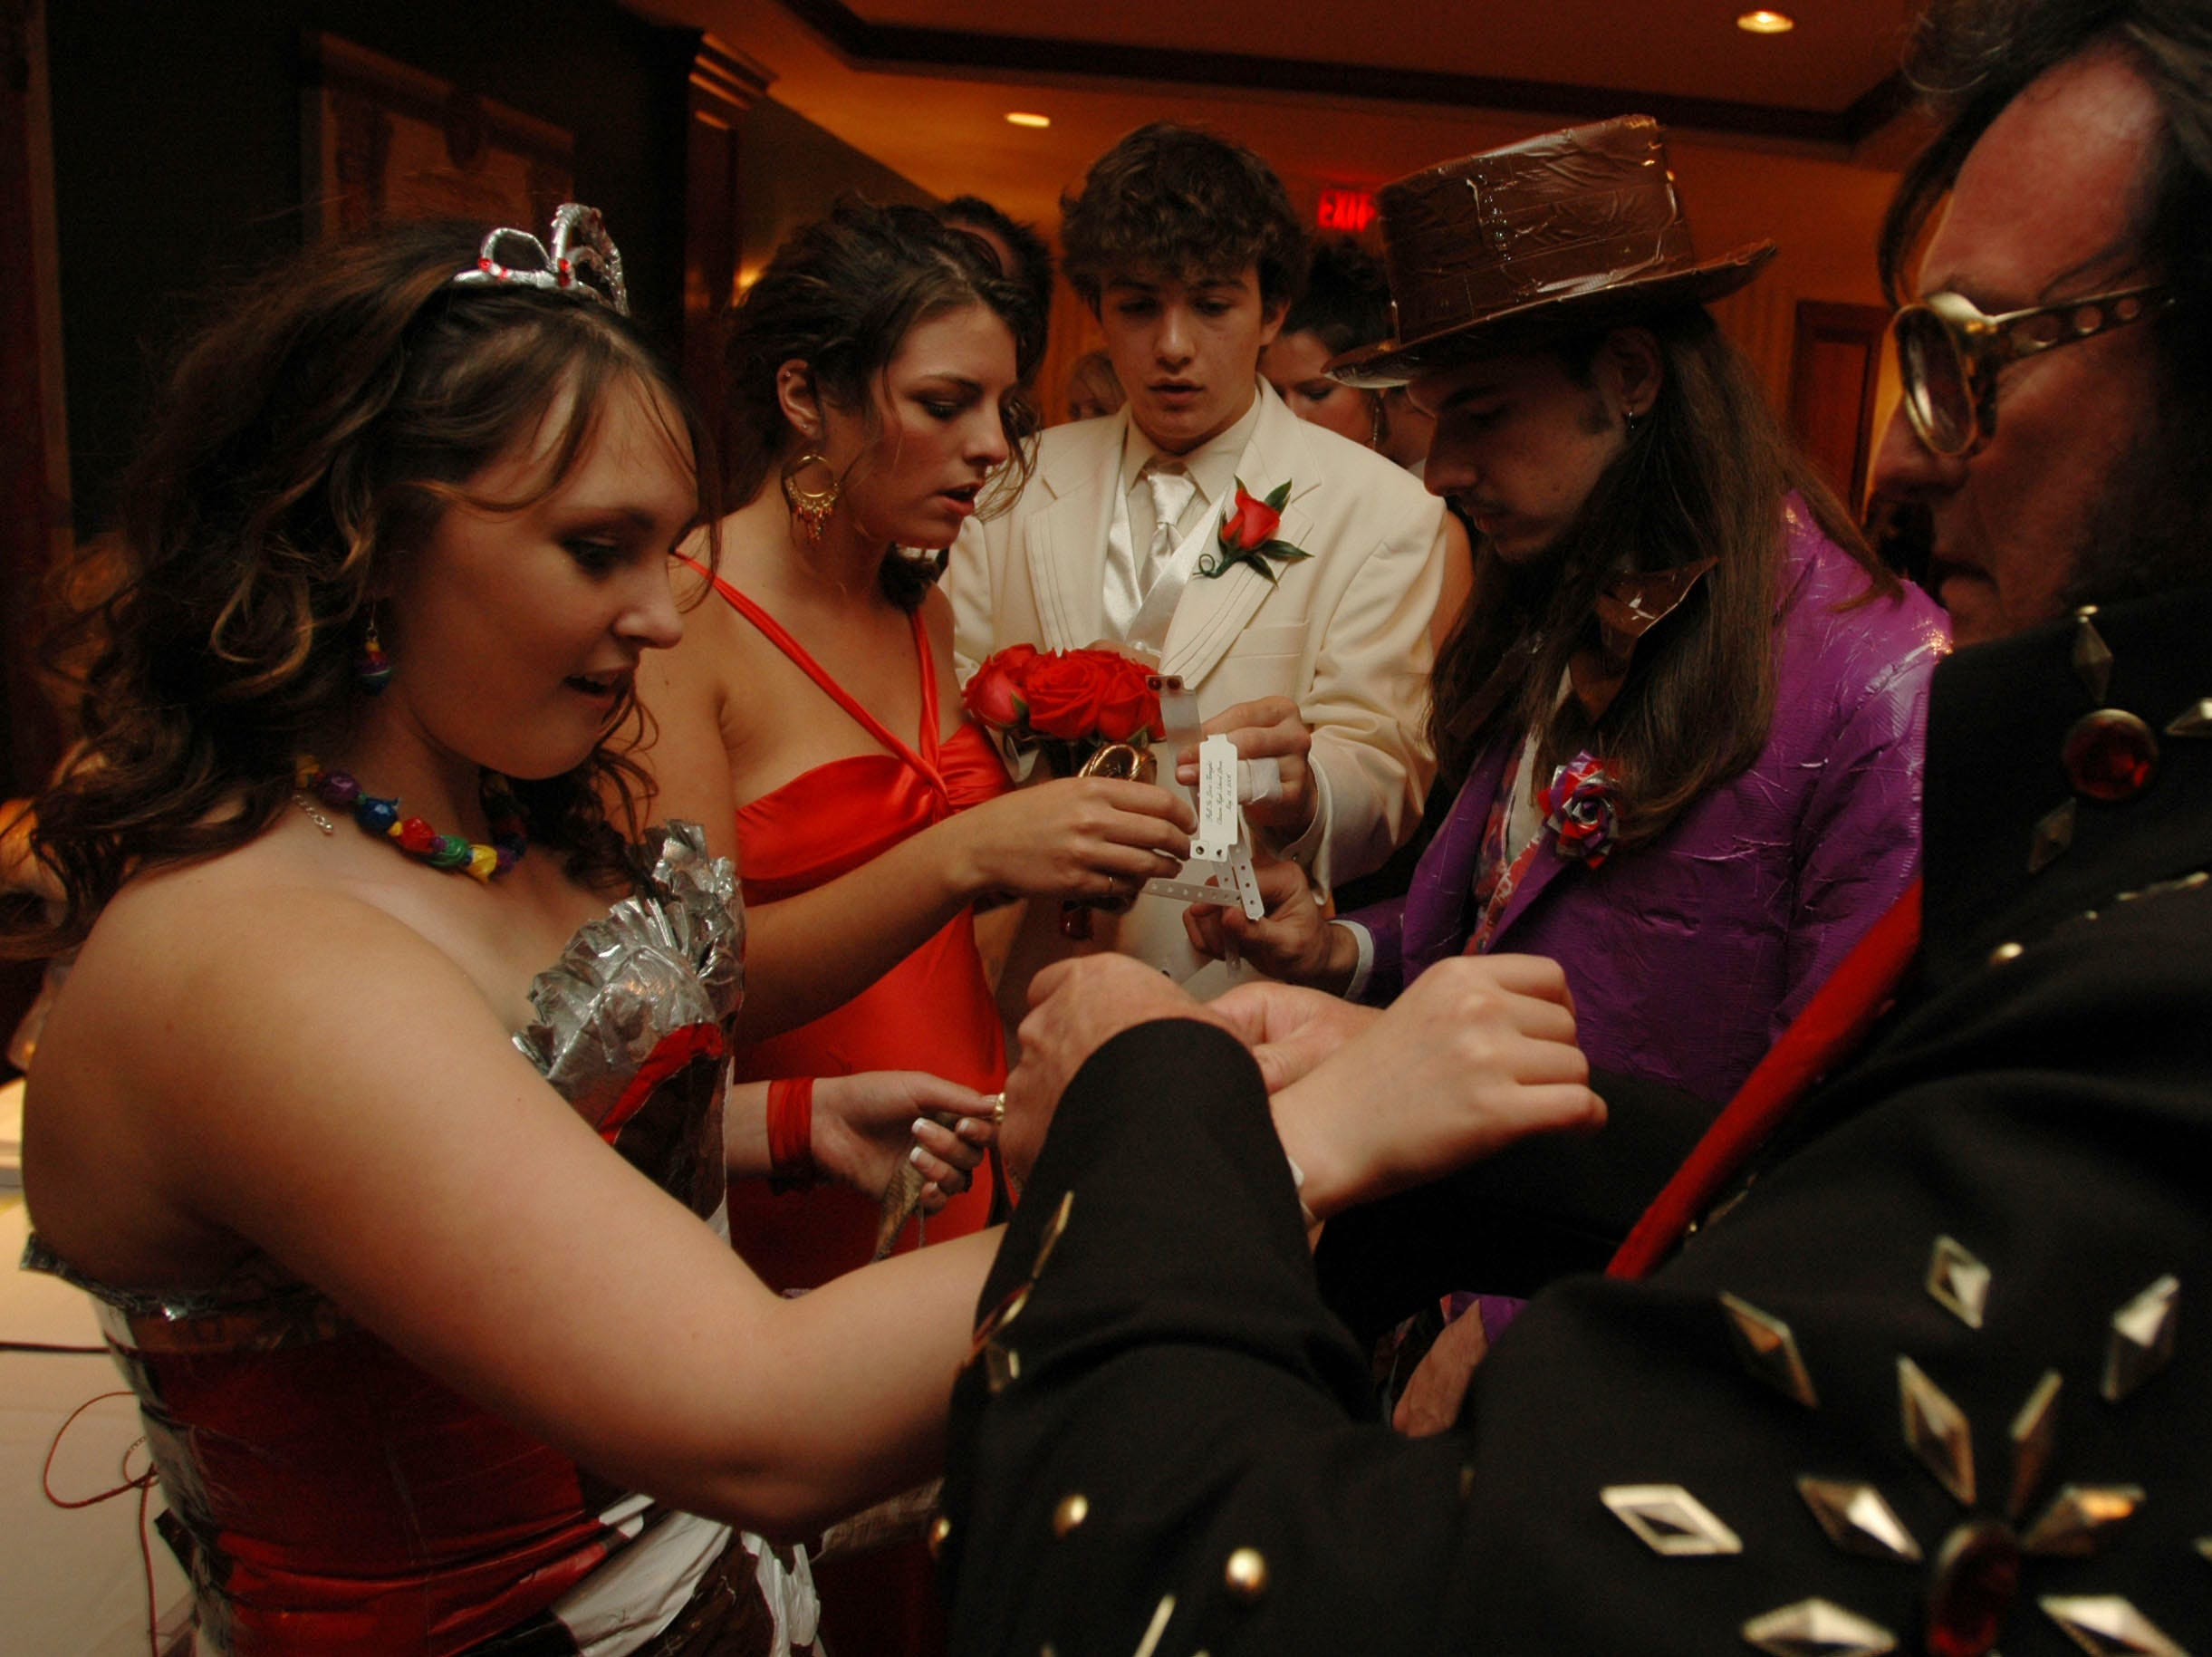 Elvis Impersonator Ray E. Robbins, right, helps Krystle Gutman, left, put her wristband on while, middle, from left, Leslie Spitzer, Dylan Ryan and T.J. Daugherty help eachother fasten their wristbands while entering the Clinton High School Prom at the Crowne Plaza Hotel in Knoxville, Tenn., Saturday night. -05/13/2006.